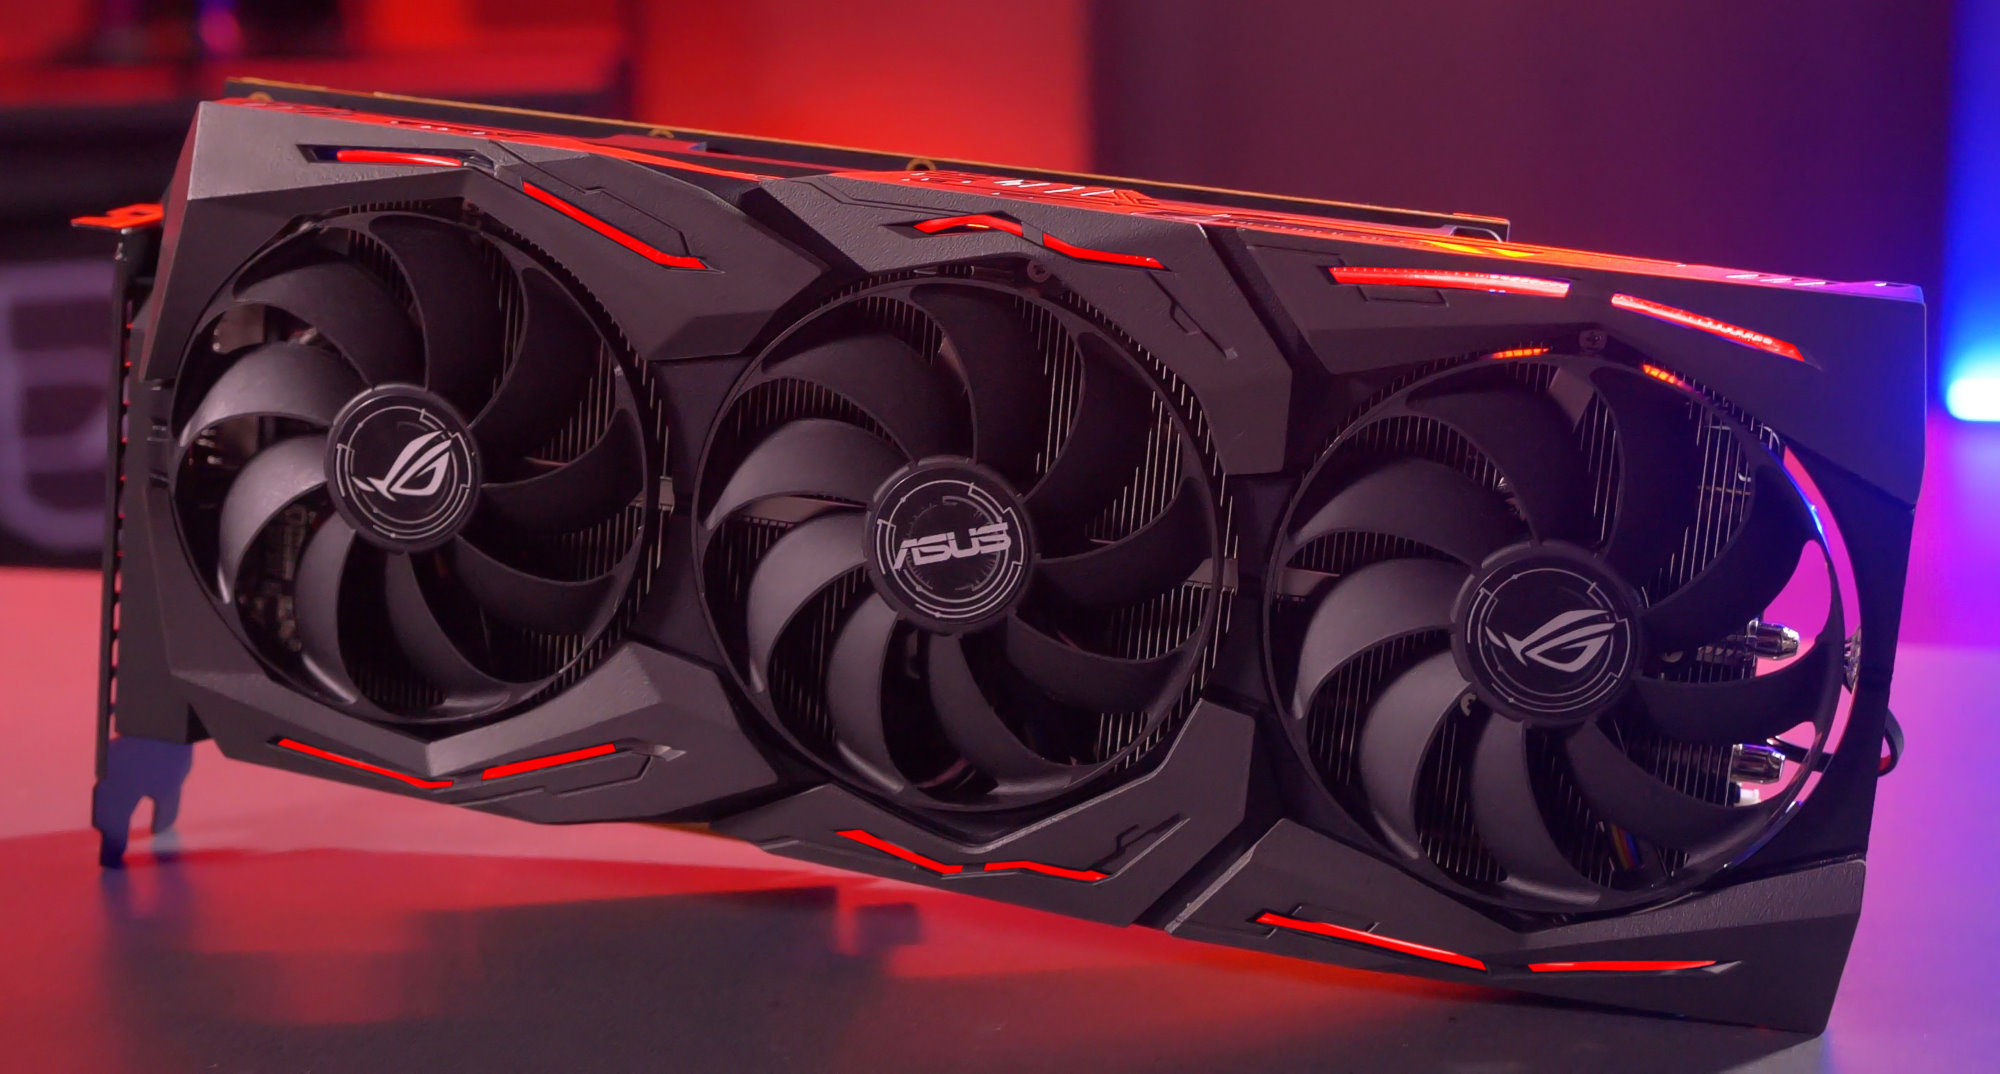 Navi shines bright with ROG Strix, TUF Gaming, and ASUS Dual Radeon